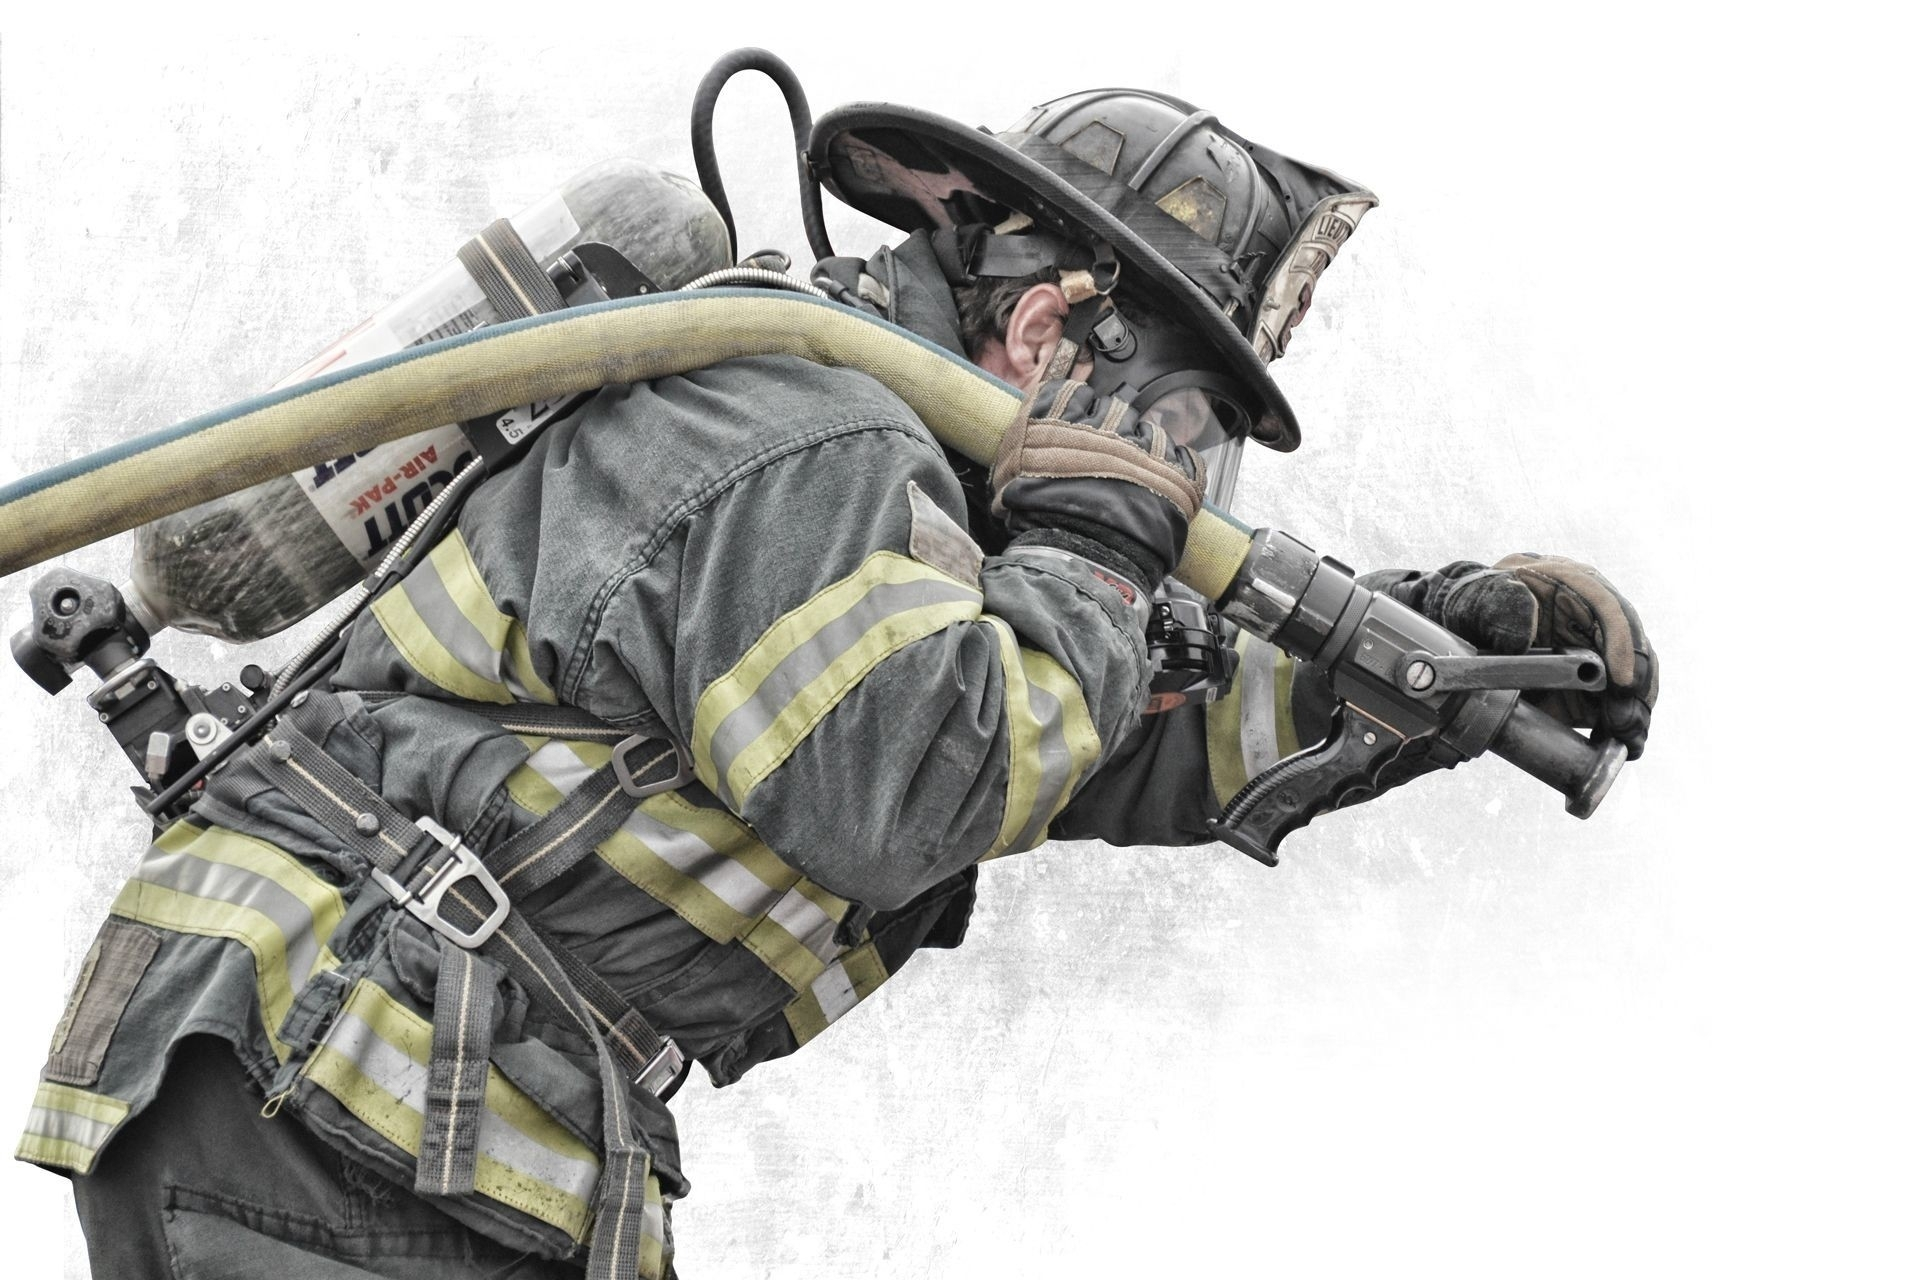 firefighter wallpaper for computer (45+ images)